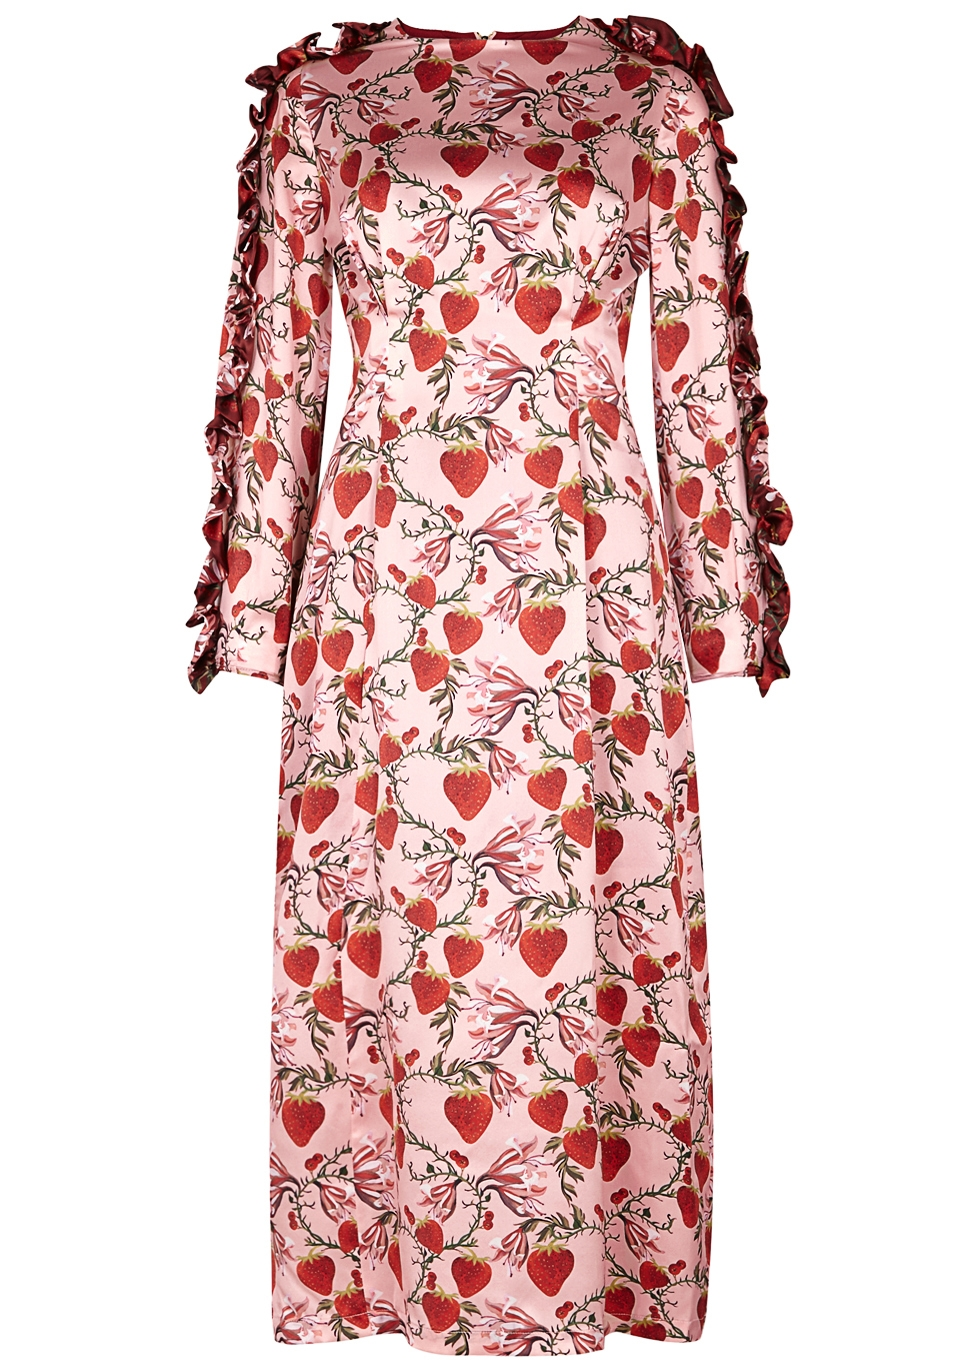 MOTHER OF PEARL WANDA STRAWBERRY-PRINT SILK SATIN DRESS